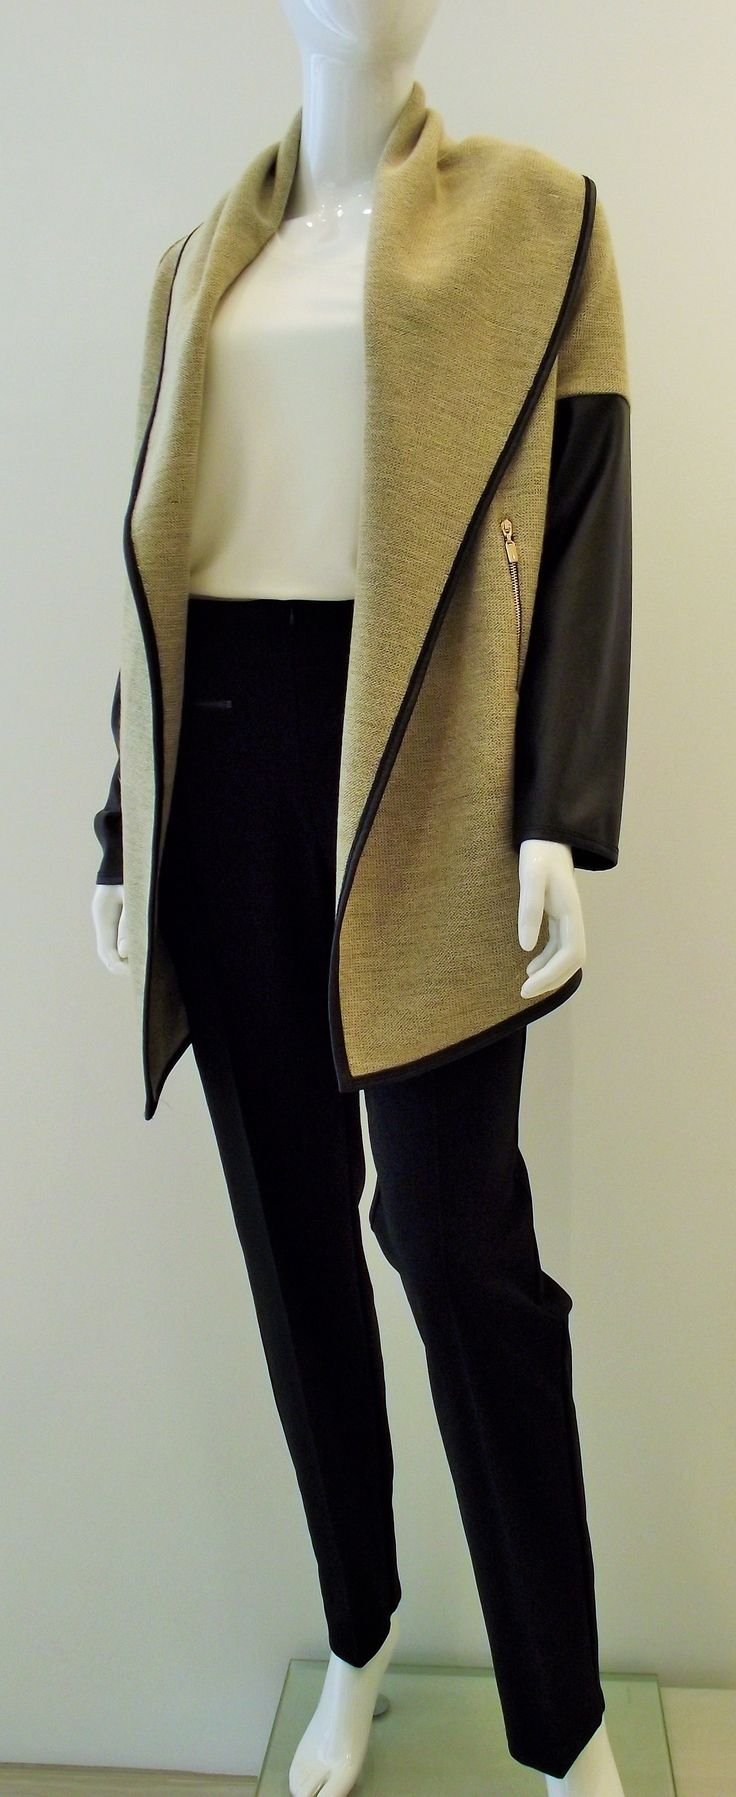 glamorous Ribkoff jacket that is perfect for fall! #classicboutique #classic #pickeringtowncenter #eastgwillimbury #josephribkoff